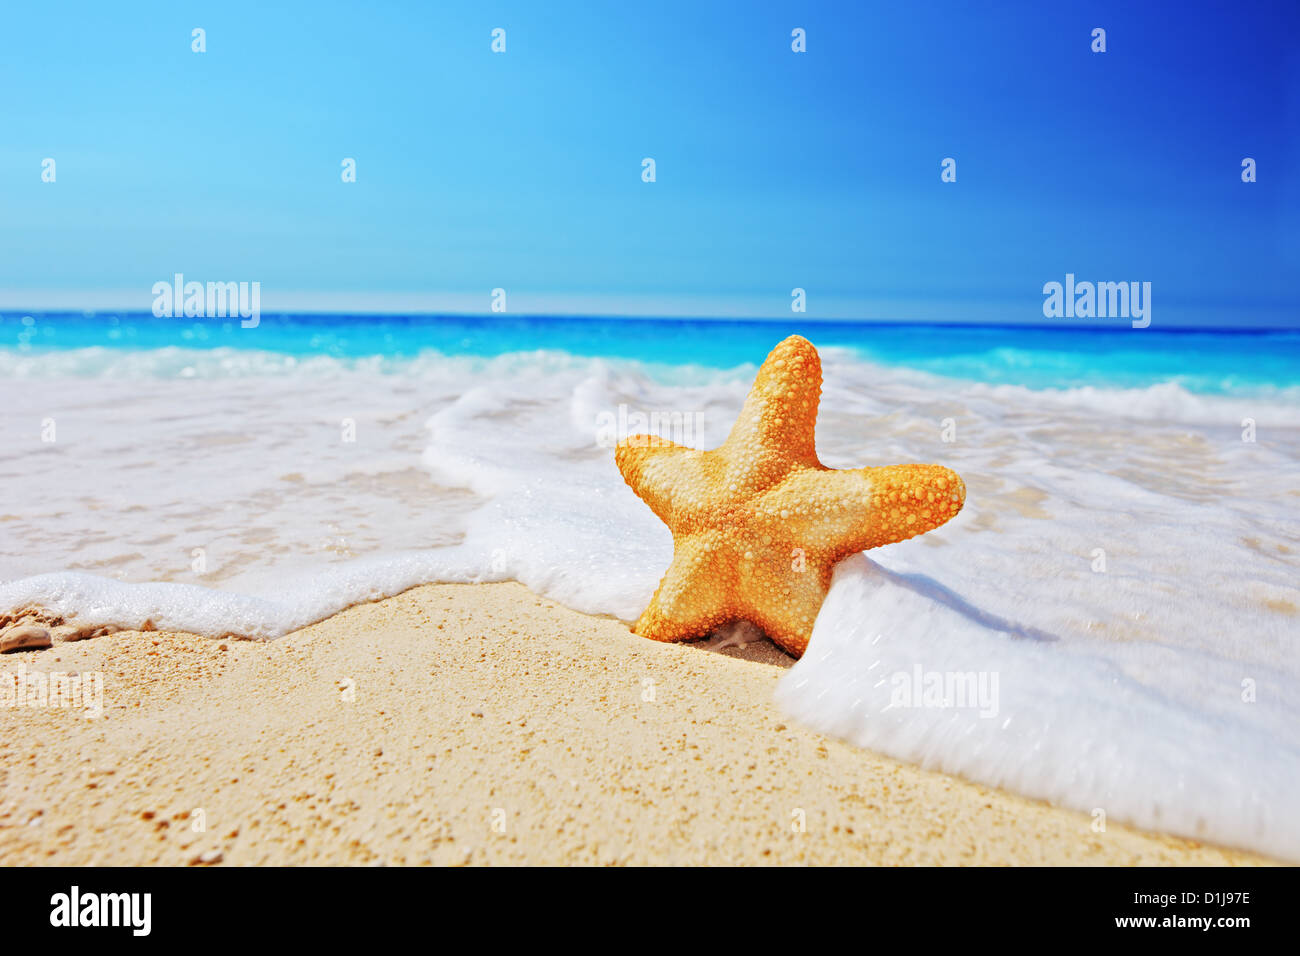 Starfish on a beach with clear sky and wave, Greece Stock Photo